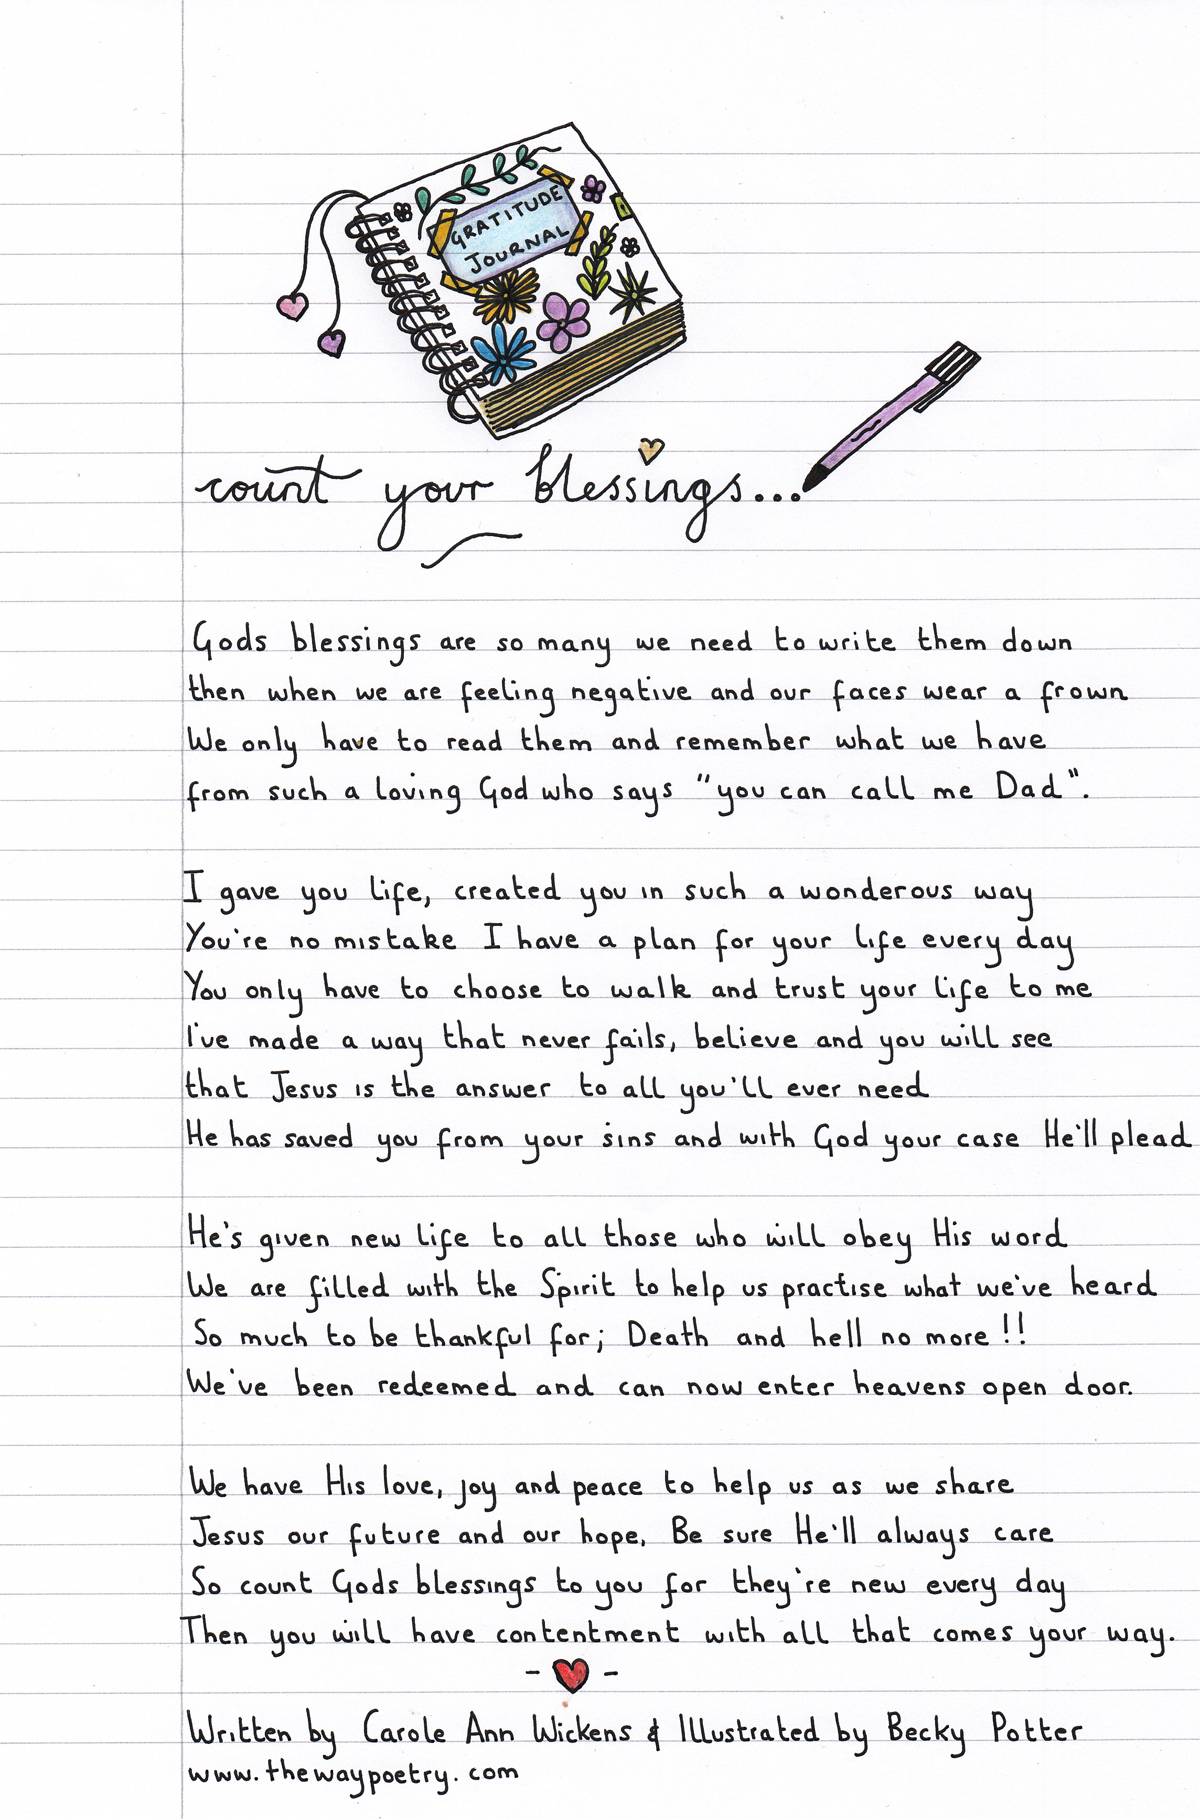 Count Your Blessings by Carole AnnWickens